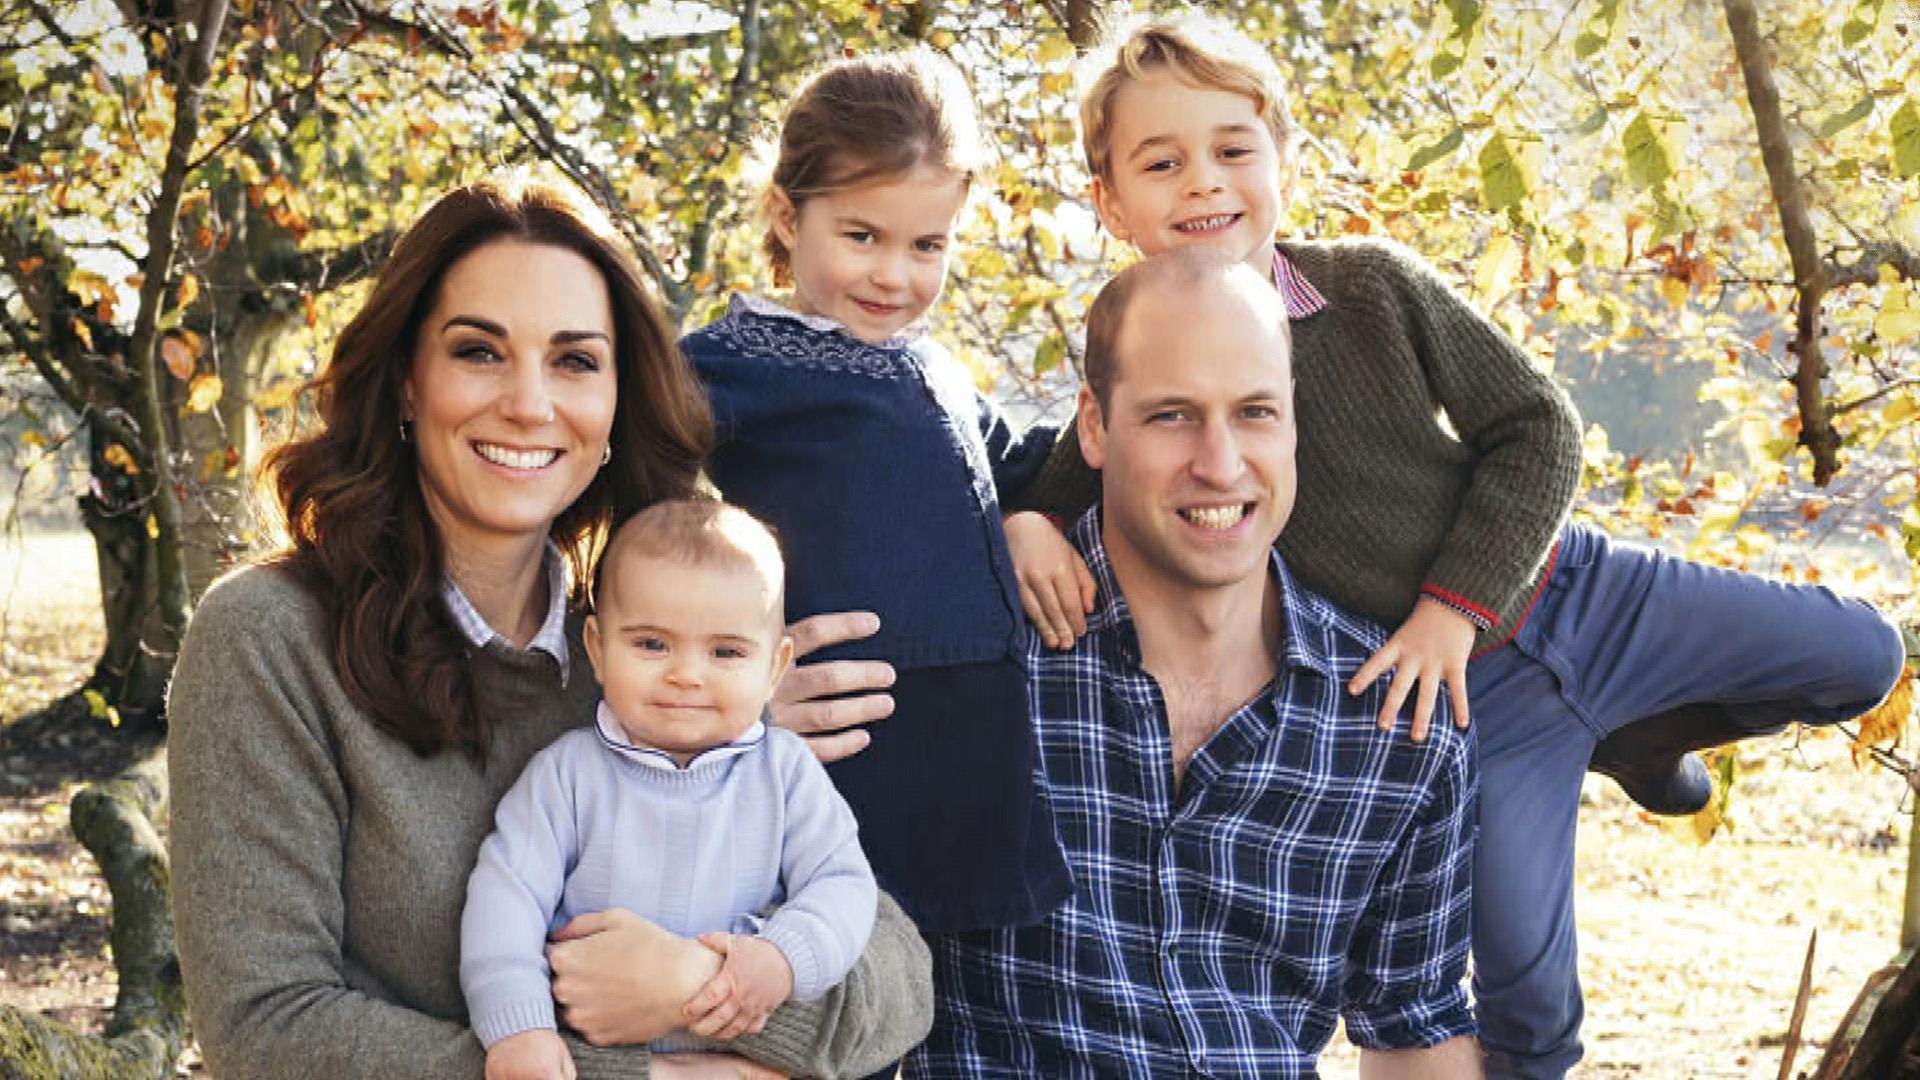 PRINCE WILLIAM AND KATE HEADING TO DIVORCE